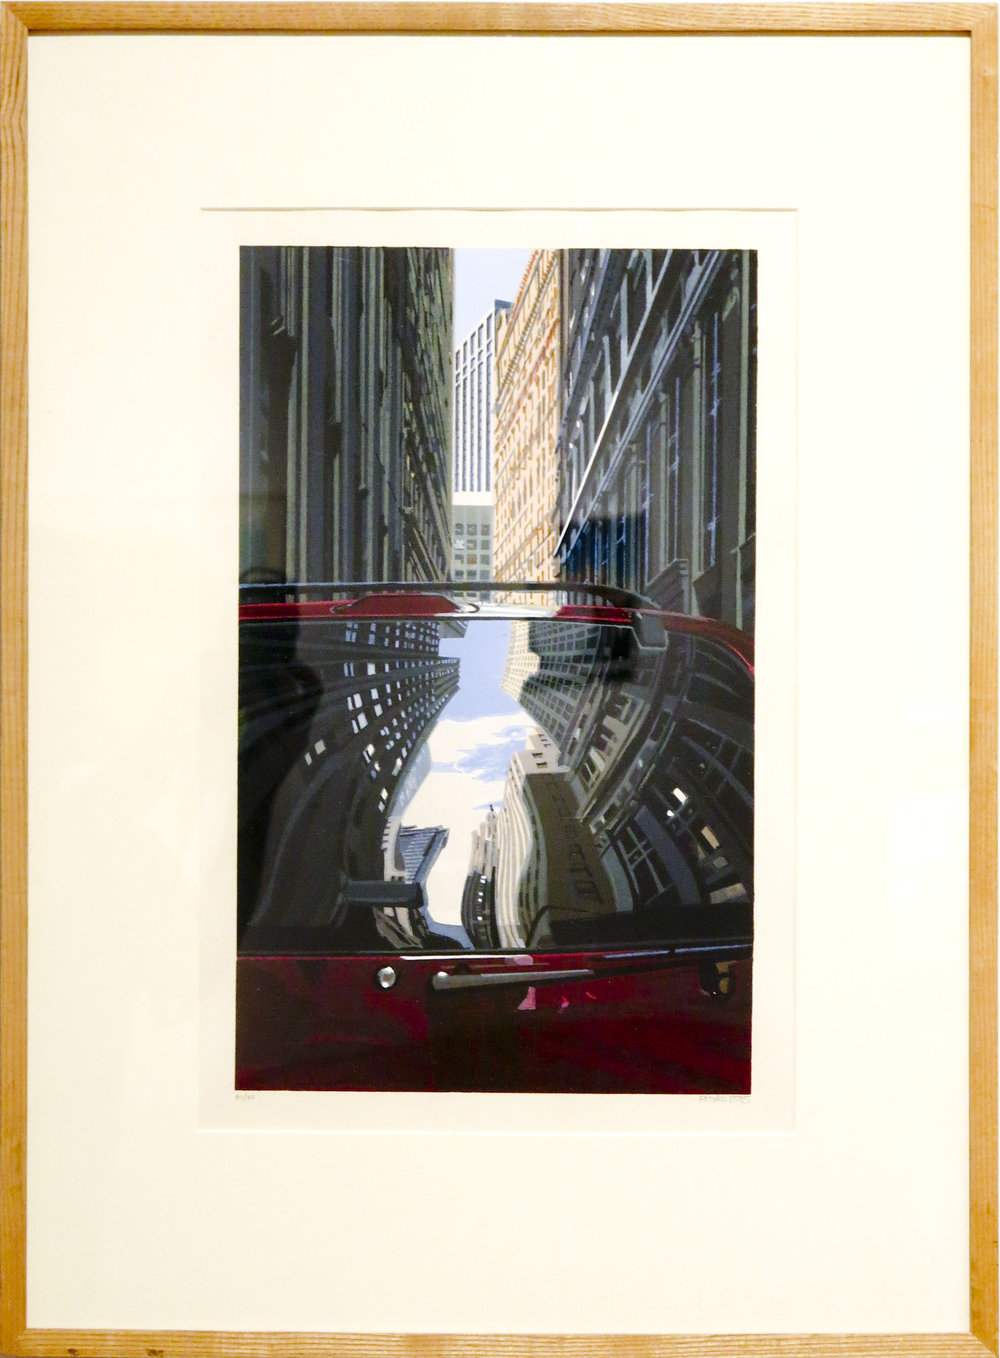 Richard Estes,  Downtown Reflections , 2001, Color woodcut print, 16 1/4h x 10w in. Ed. 40 of 49